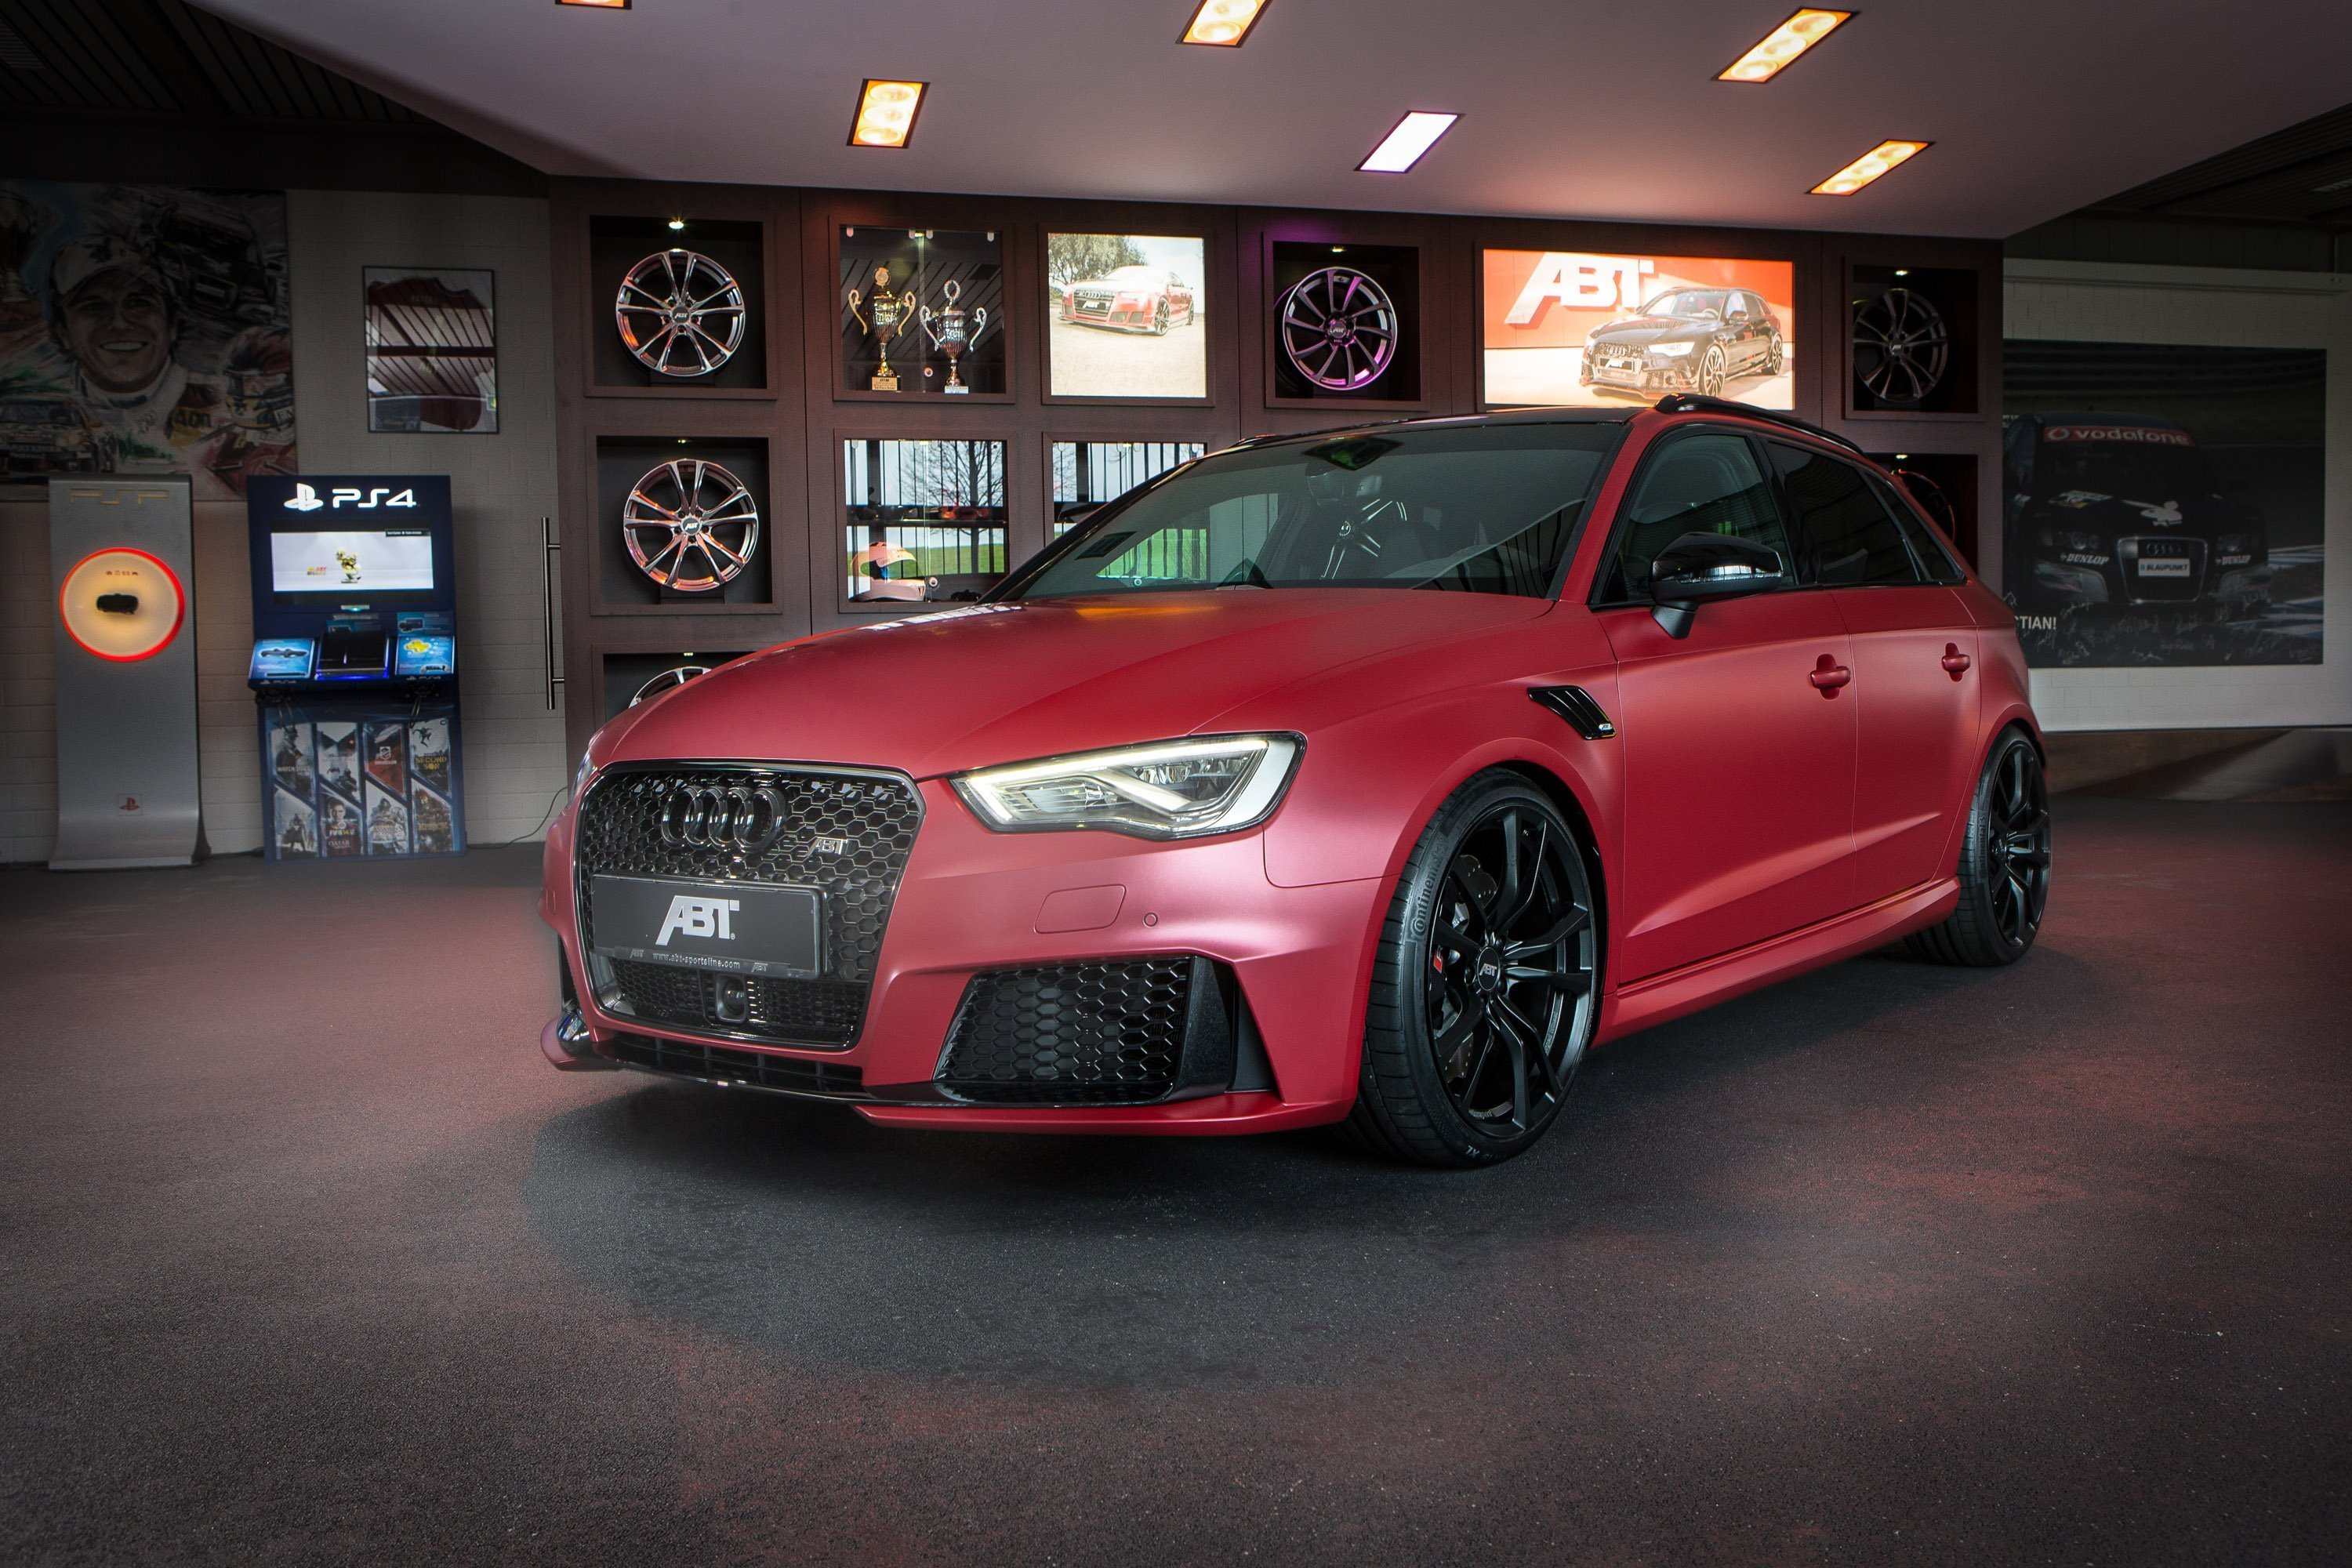 Latest Abt Sportback Cars Audi Rs3 Tuning Wallpaper 3000X2000 Free Download